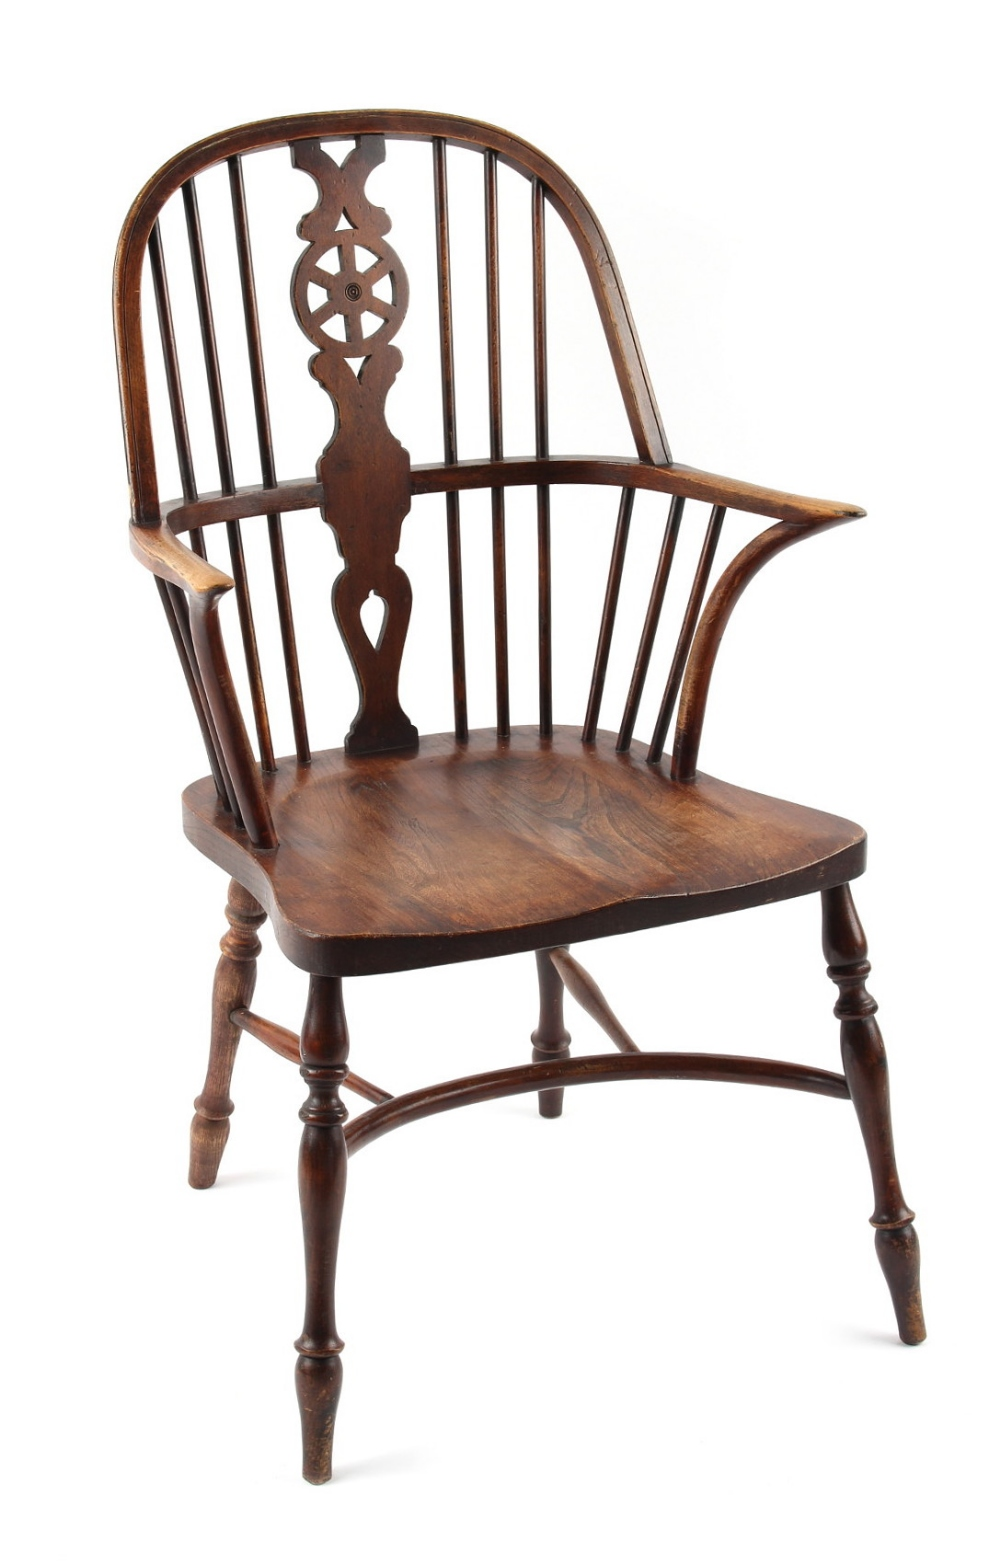 Lot 419 - A Glenister Windsor wheel-back elbow chair, with turned legs united by a crinoline stretcher.